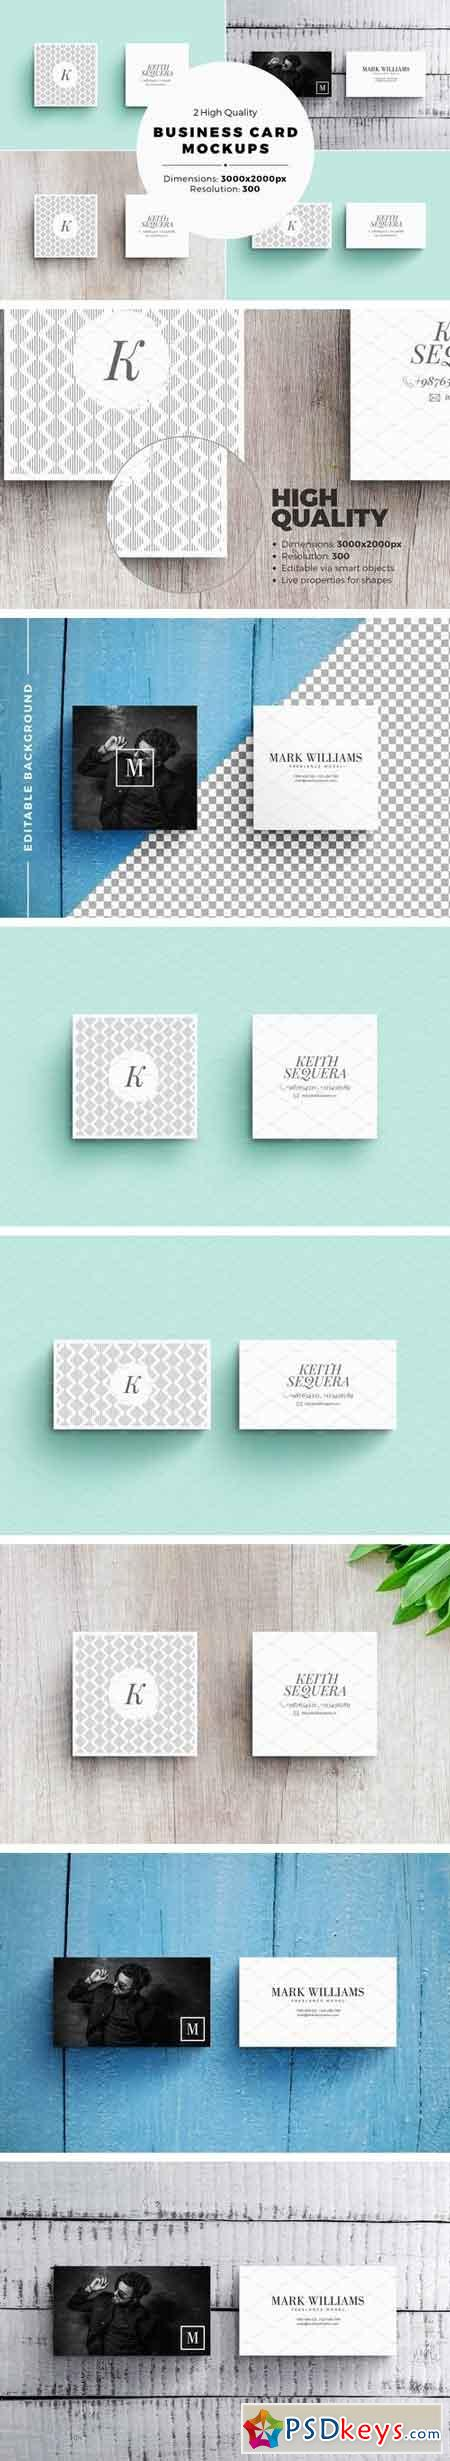 Business Card MockUps 2000526